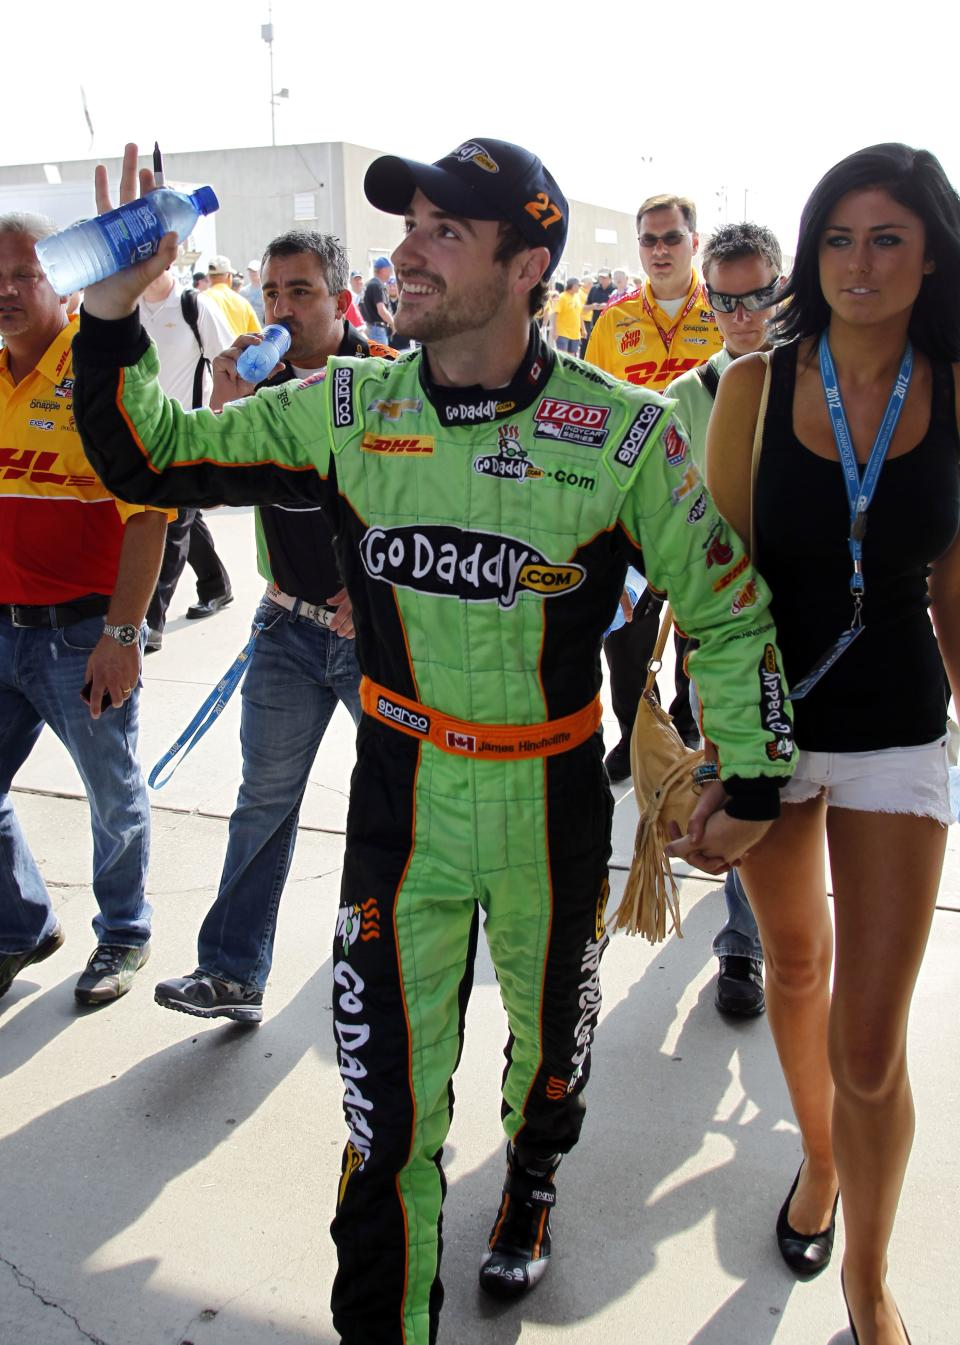 IndyCar driver James Hinchcliffe, of Canada, waves to fans as he walks to the pit area for the final day of practice for the Indianapolis 500 auto race at the Indianapolis Motor Speedway in Indianapolis, Friday, May 25, 2012. The 96th running of the race is Sunday. (AP Photo/Tom Strattman)